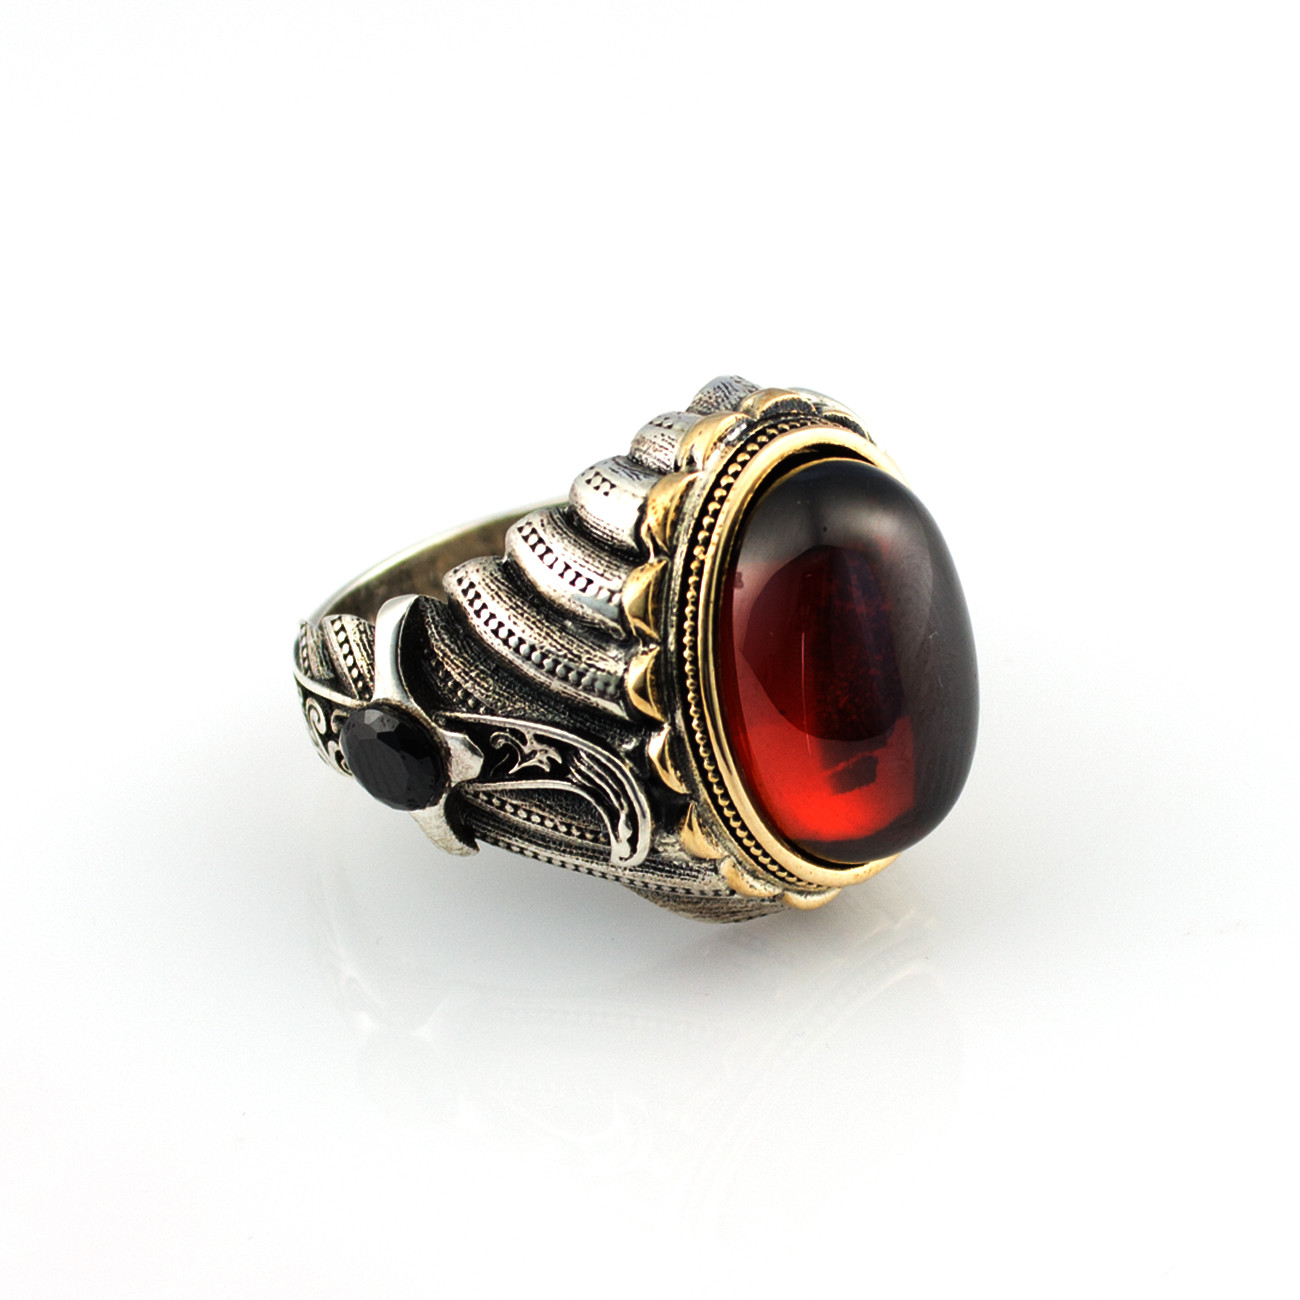 925 Sterling Silver Ring for Men with Red Zircon Stone Jewelry fashion vintage Gift Onyx Aqeq Mens Rings All Size made in Turkey